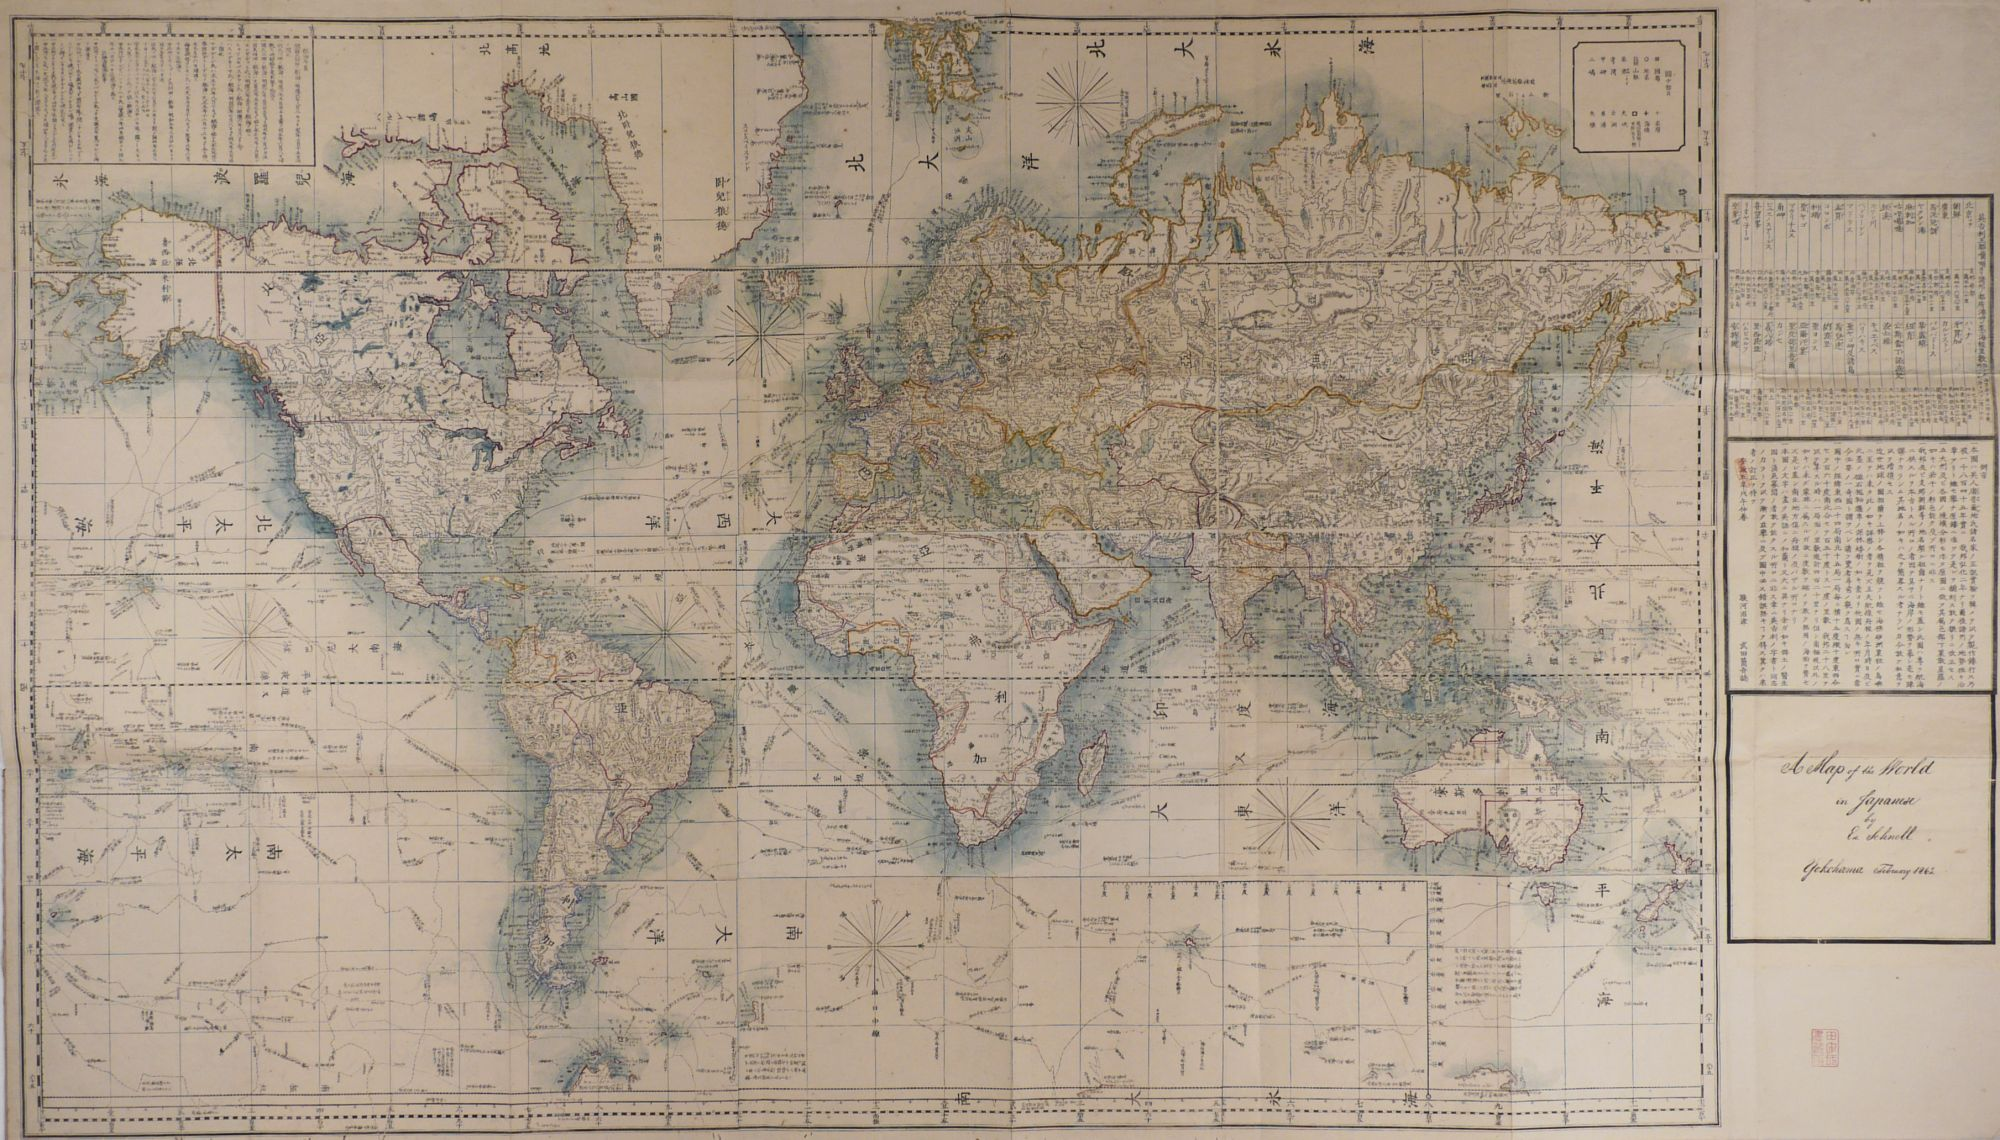 New Japanese World Map.World Map A Map Of The World In Japanese By Ed Schnell Yokohama